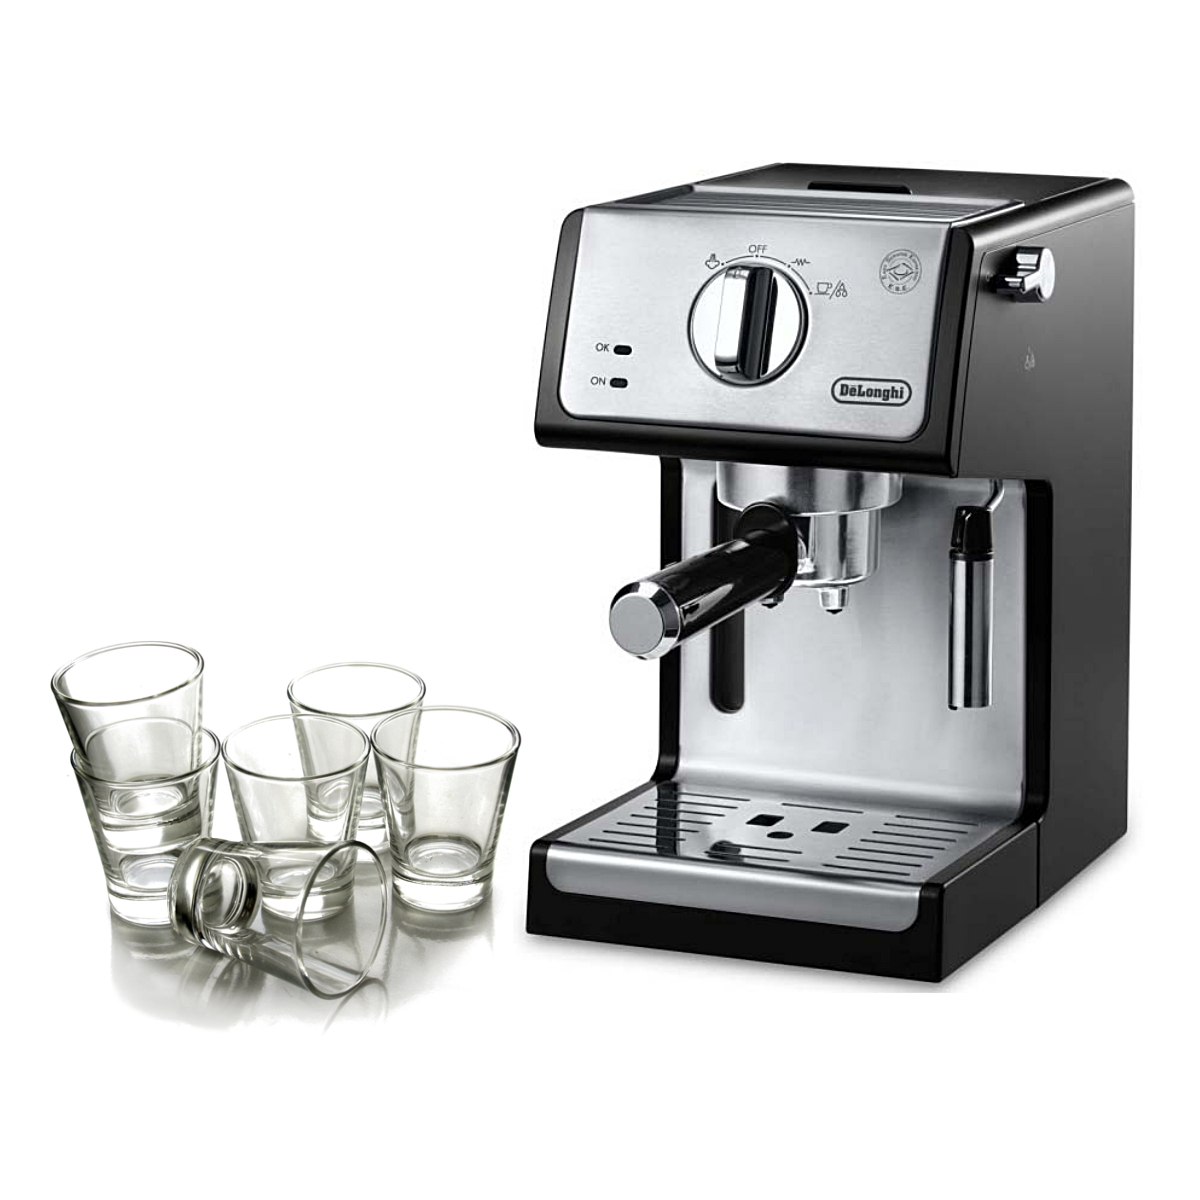 Delonghi Black 15 Bar Pump Combination Espresso and Cappuccino Machine with Free Set of 6 Italian Espresso Shot Glasses